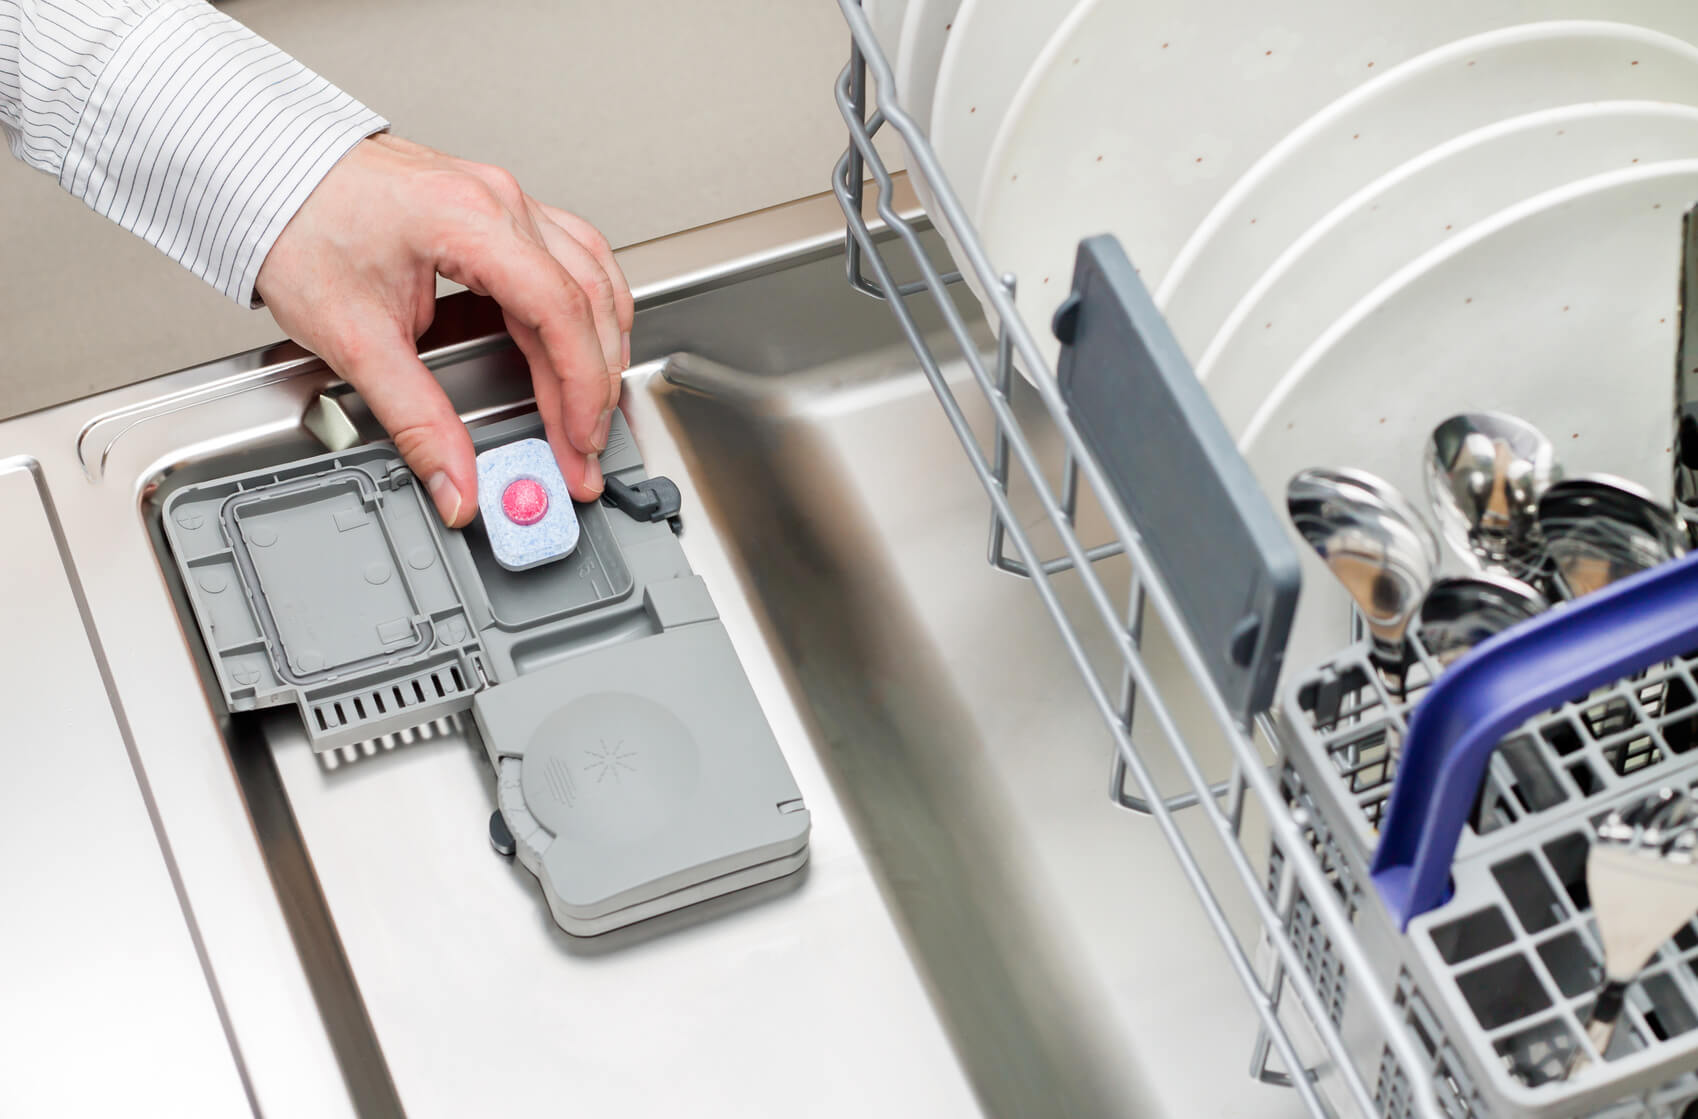 Tablets won't dissolve in the dishwasher – what do I do?